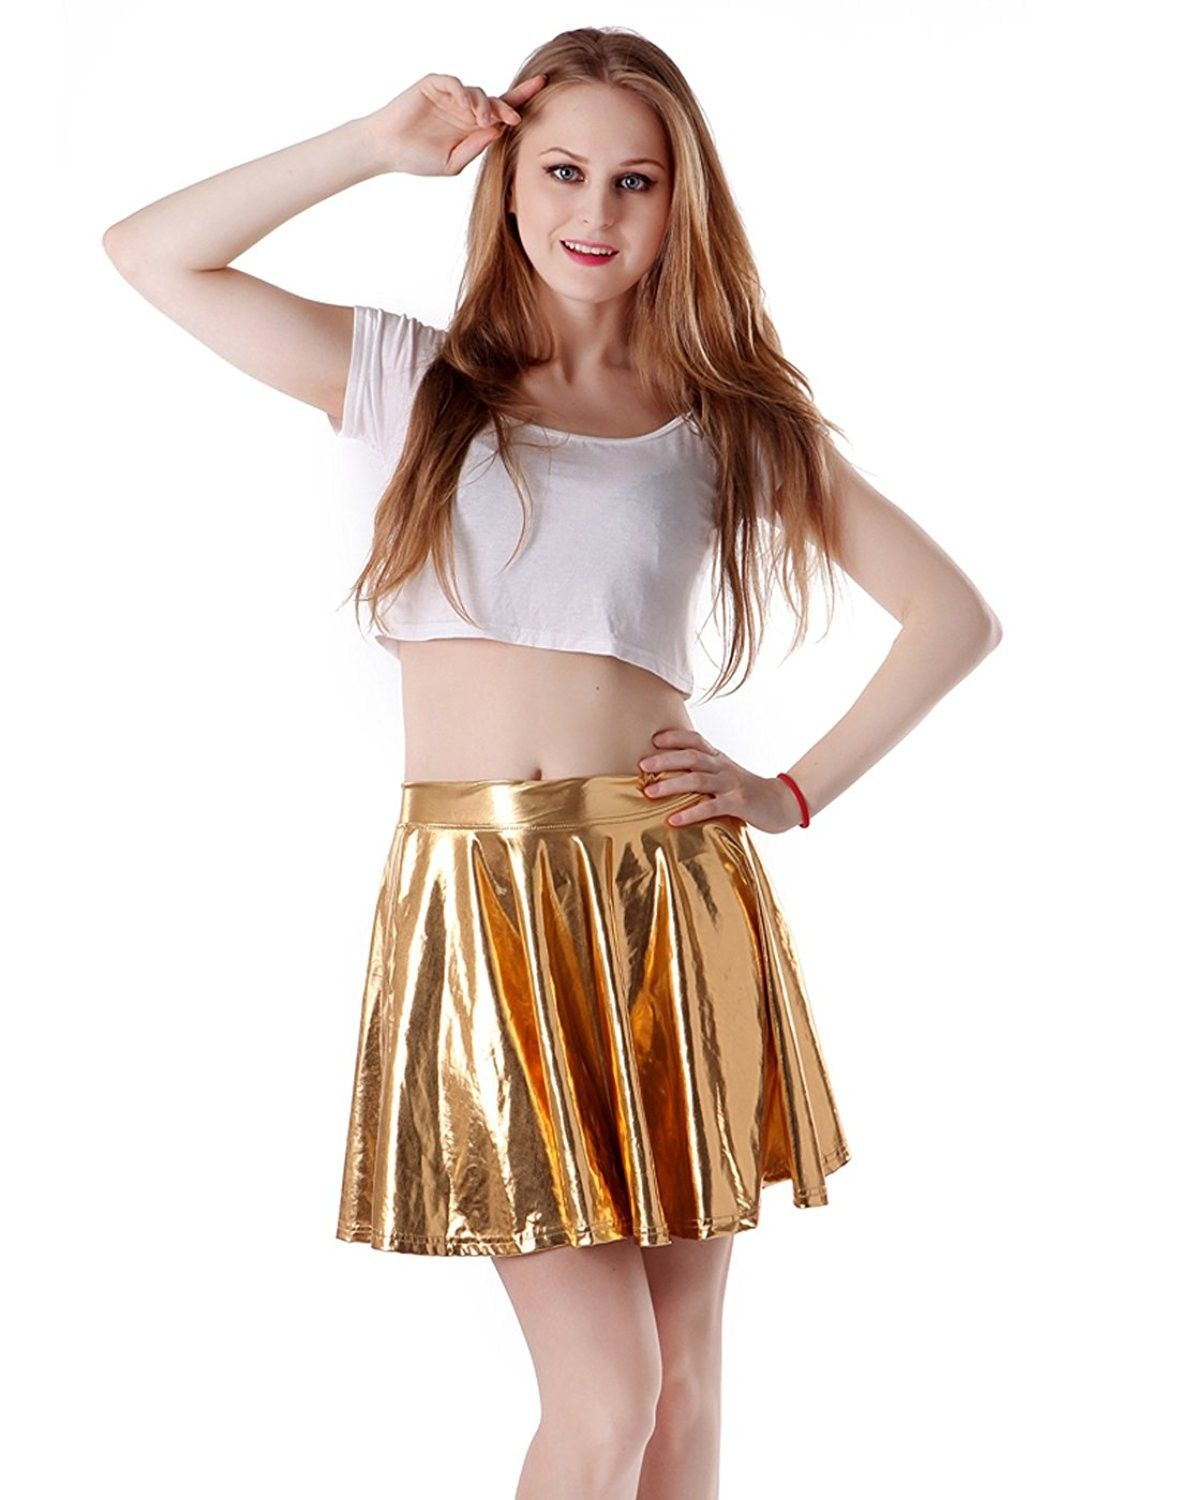 b2b41967c3626 Women's Shiny Liquid Metallic Wet Look Flared Pleated Skater Skirt - Gold -  C411M6NONCH - Women's Clothing, Skirts #Skirts #Women's #Clothing # #Skirts